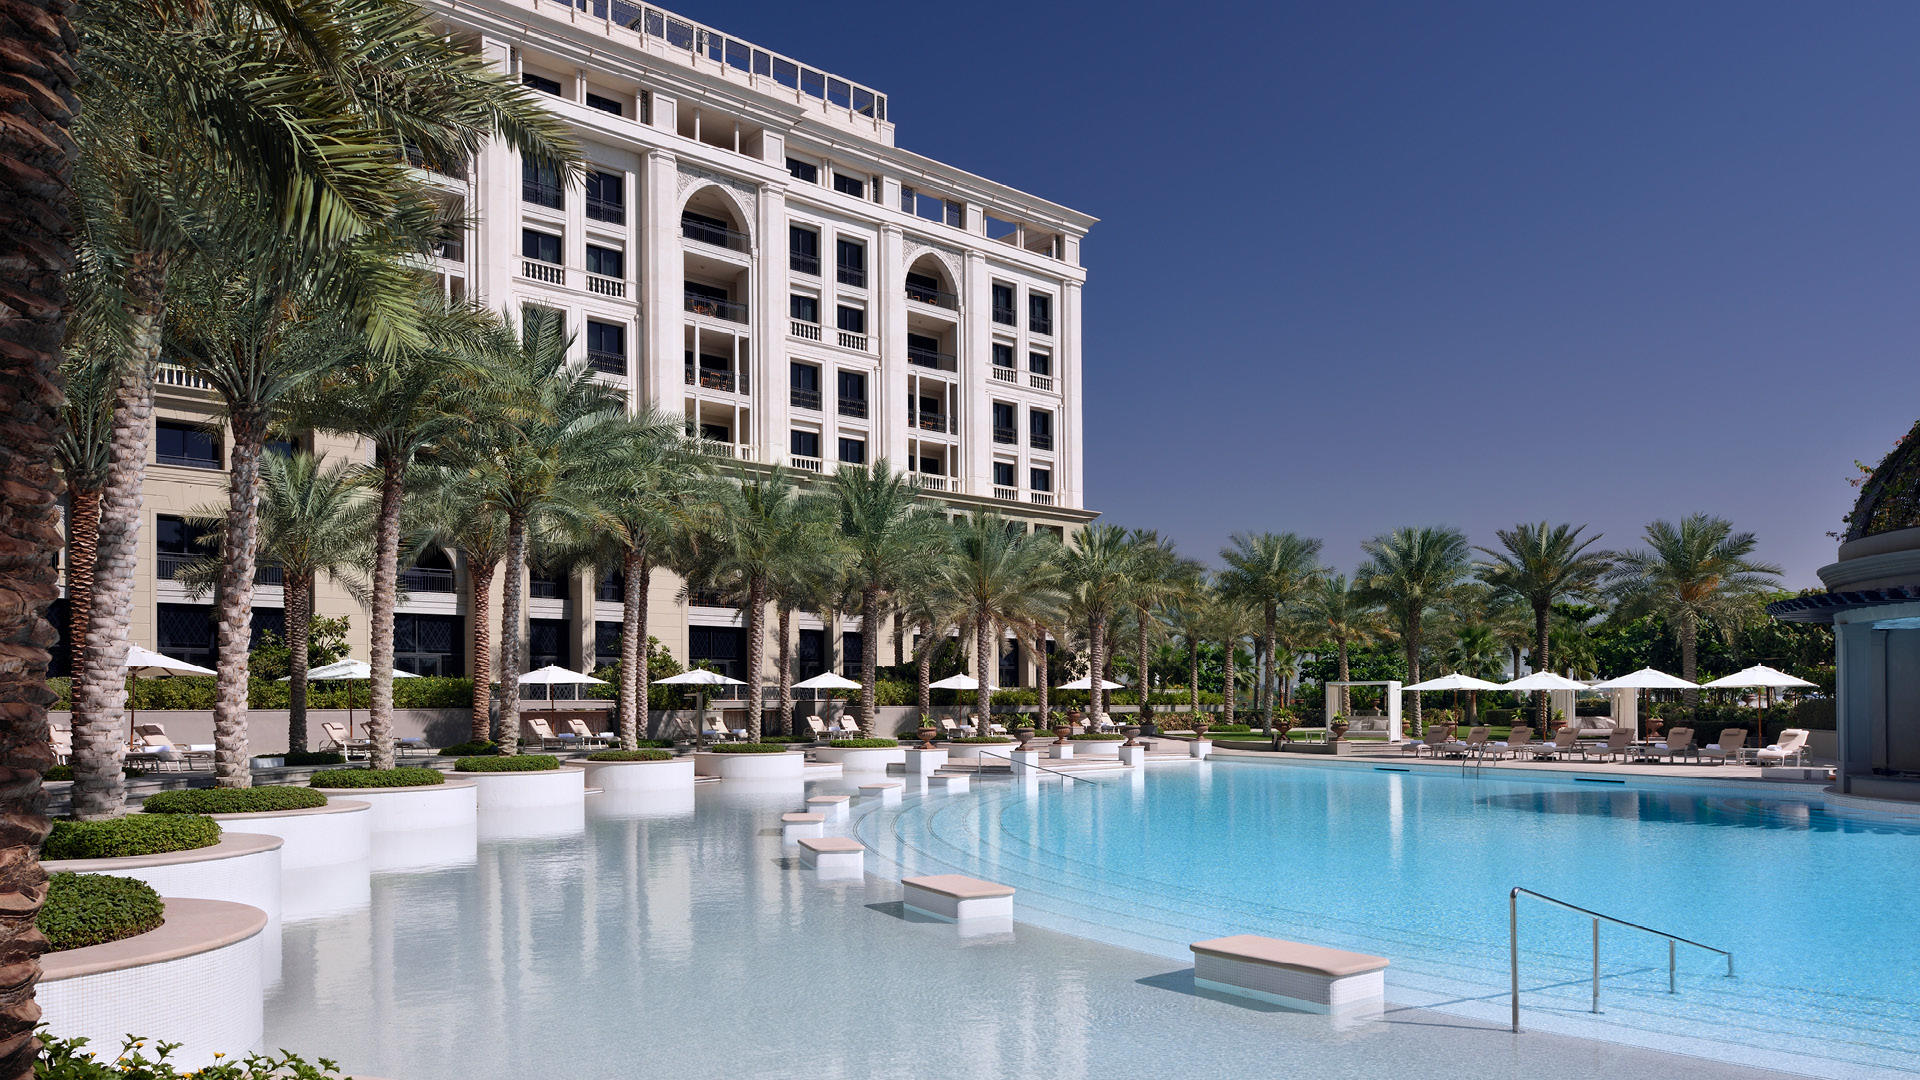 Indulge In The Ultimate Luxe Experience At The Palazzo Versace This Summer